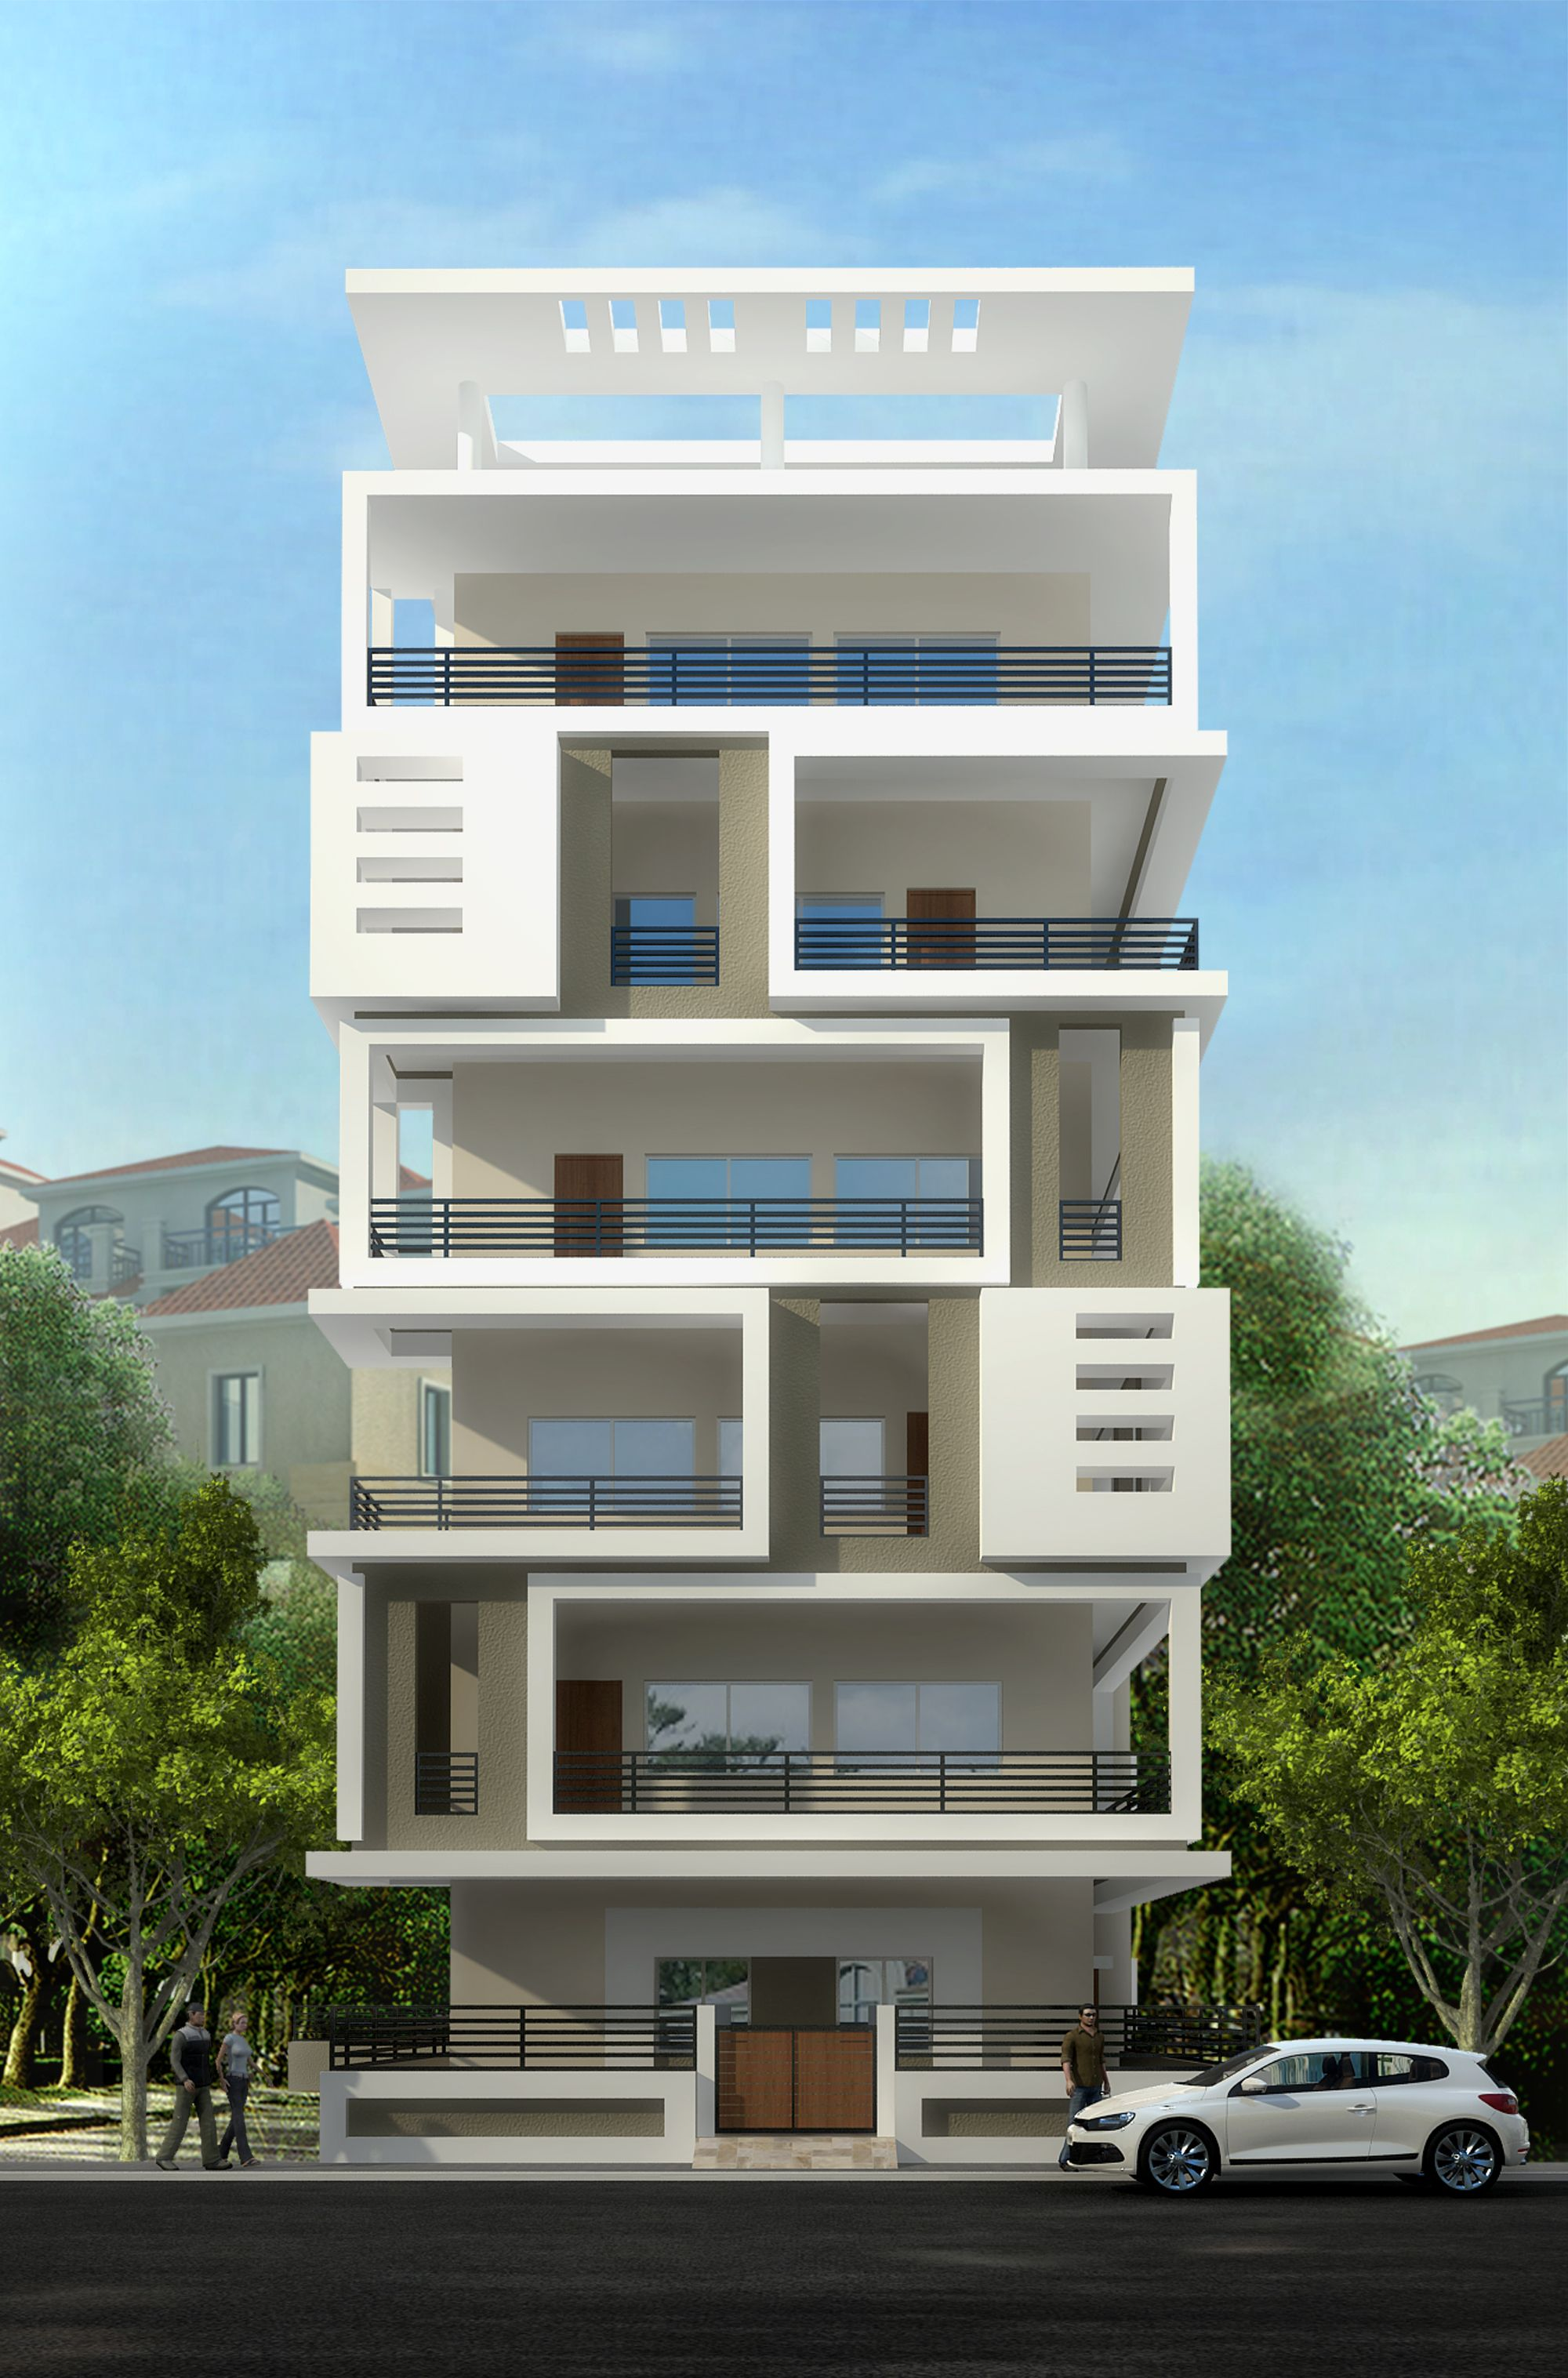 Pin By Sahana Shetty On Apartments Architecture Building Design